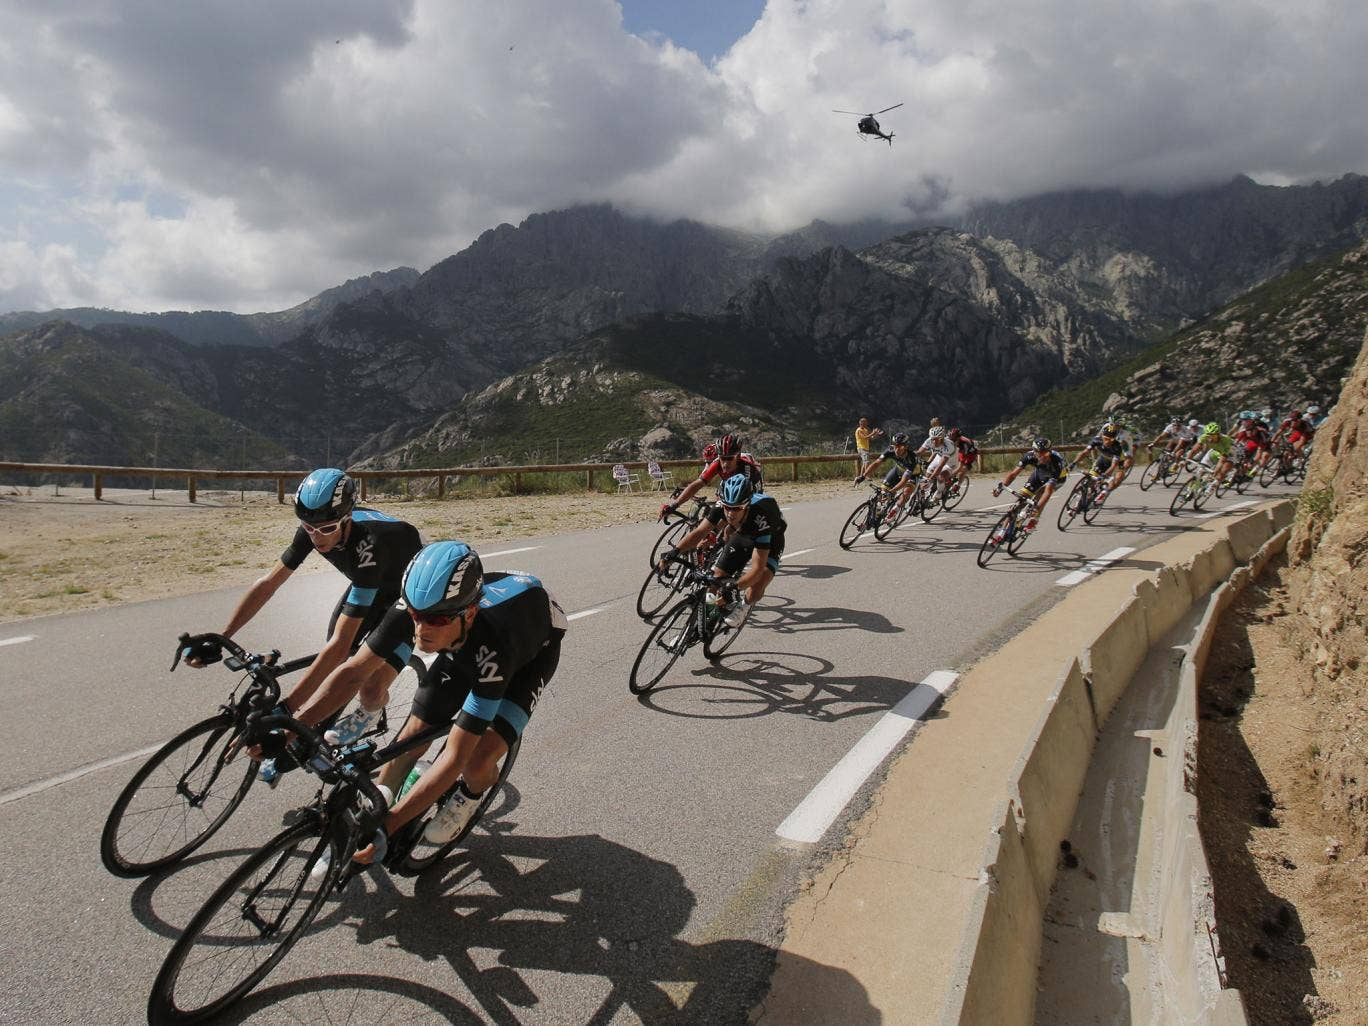 Team Sky's Vasili Kiryienka, right, and Chris Froome, left, lead during stage two yesterday